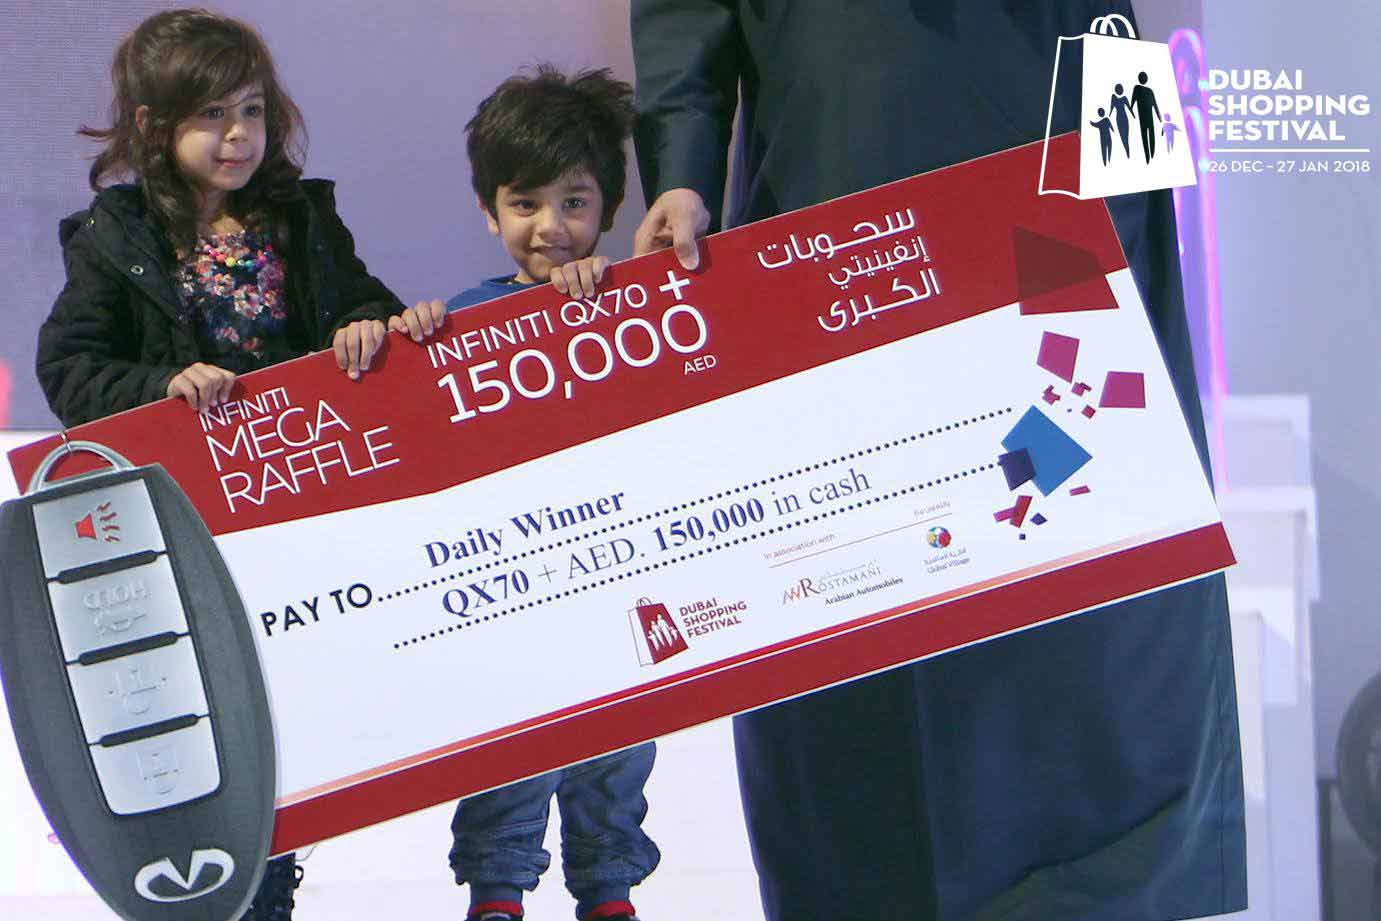 Mega Raffles in Dubai Shopping Festival